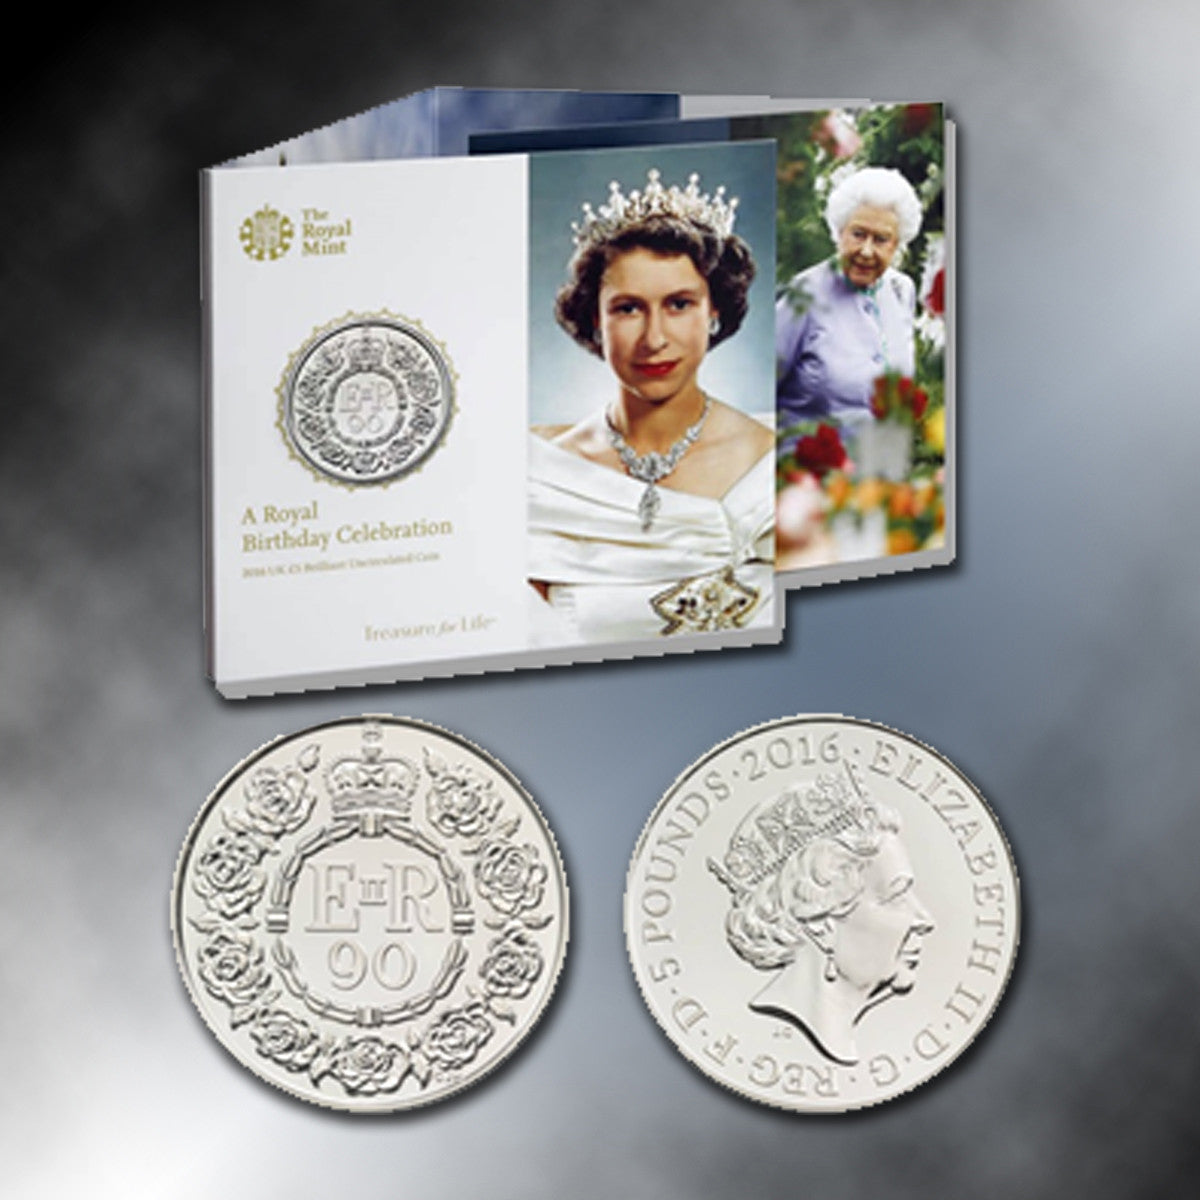 A Royal Birthday Celebration - Official UK £5